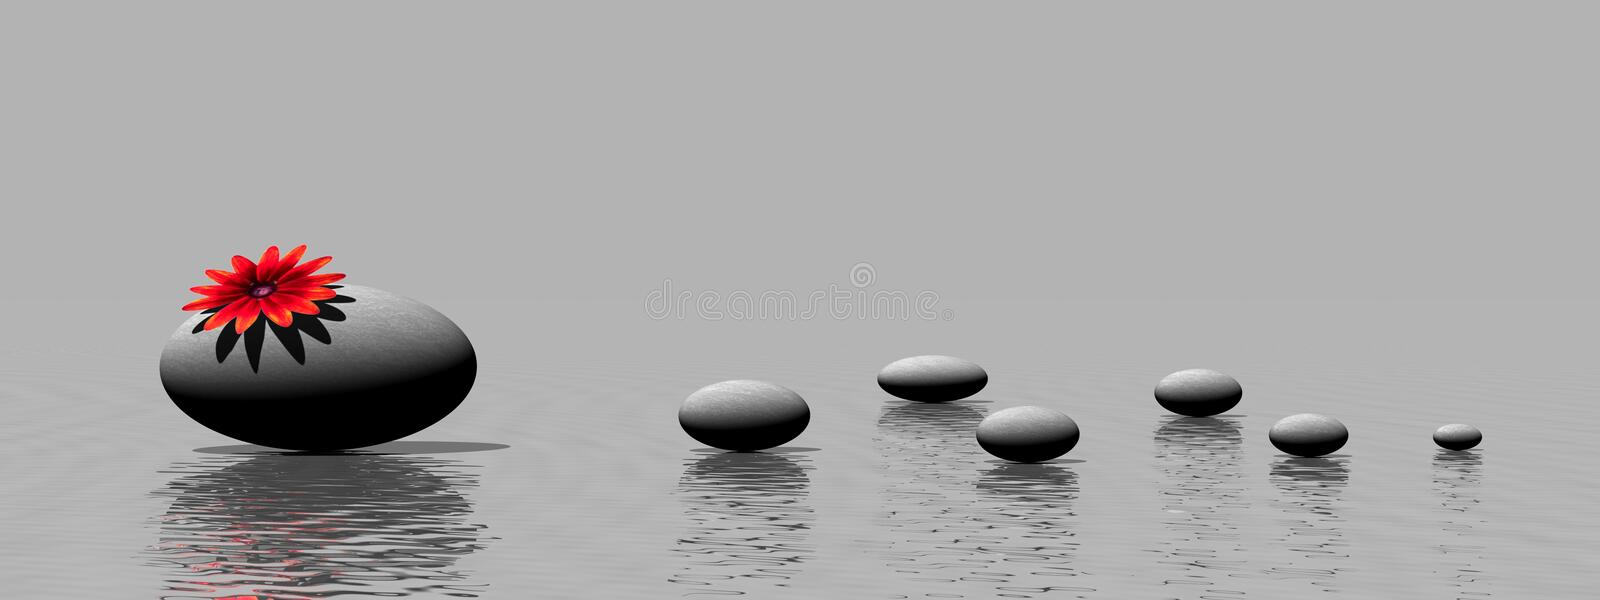 Download Zen Stones And Flower Royalty Free Stock Images - Image: 20003689